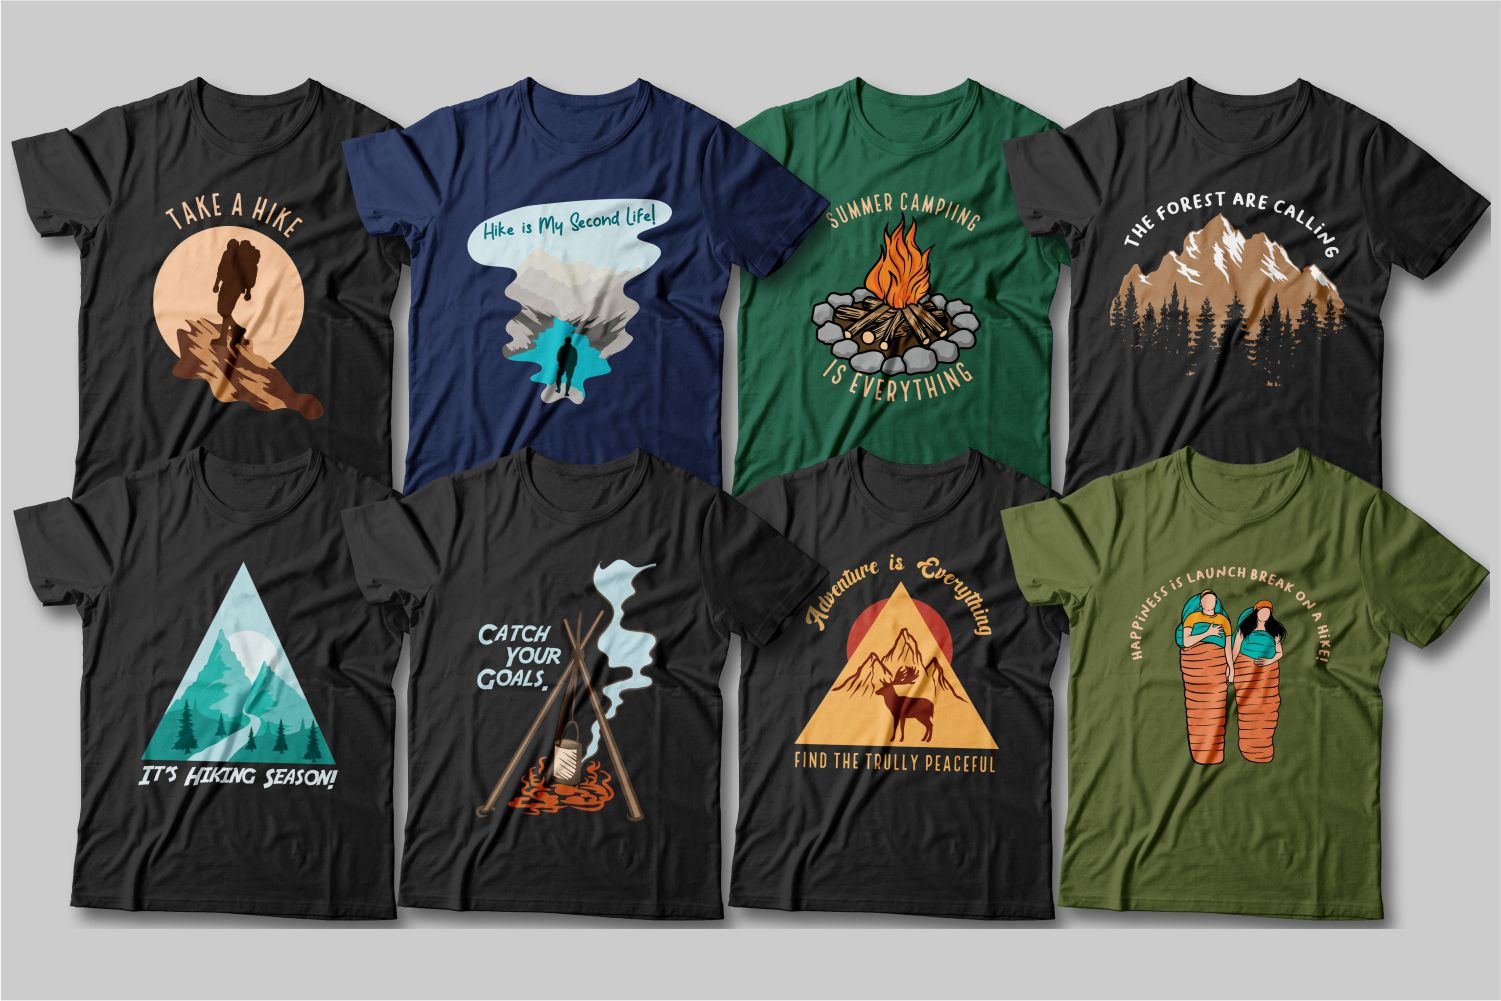 Campfire gatherings, fresh air and the smell of a coniferous forest - these T-shirts tell all about it.